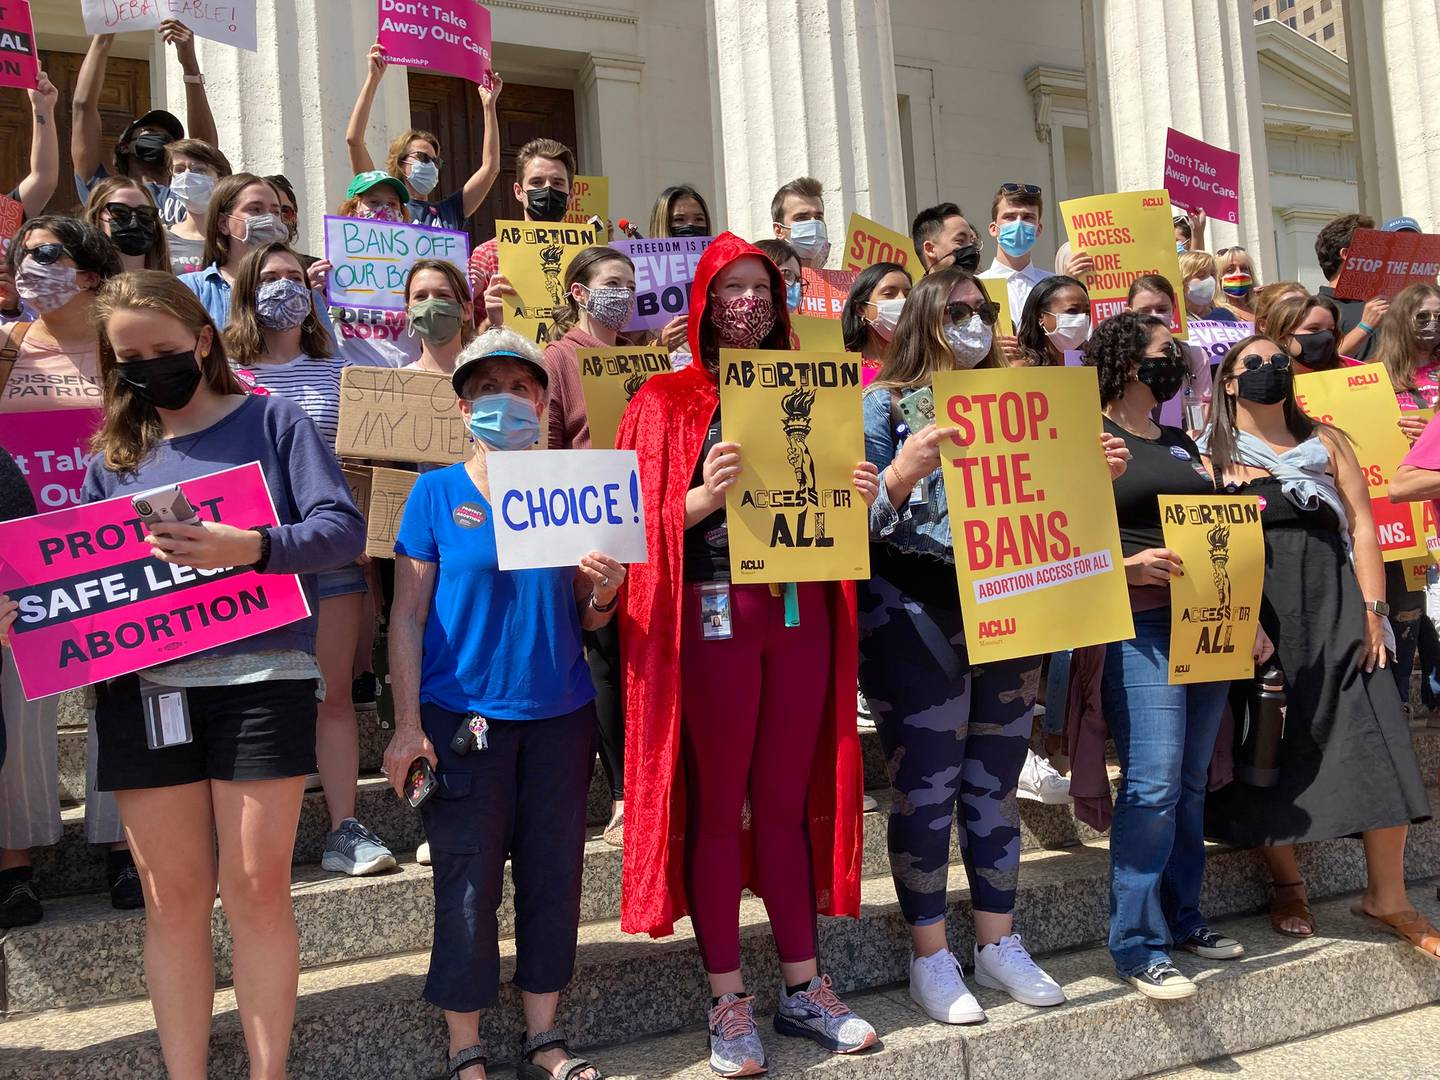 About 200 abortion rights demonstrators gathered outside the Old Courthouse in St. Louis, for a rally last month. Photo / AP